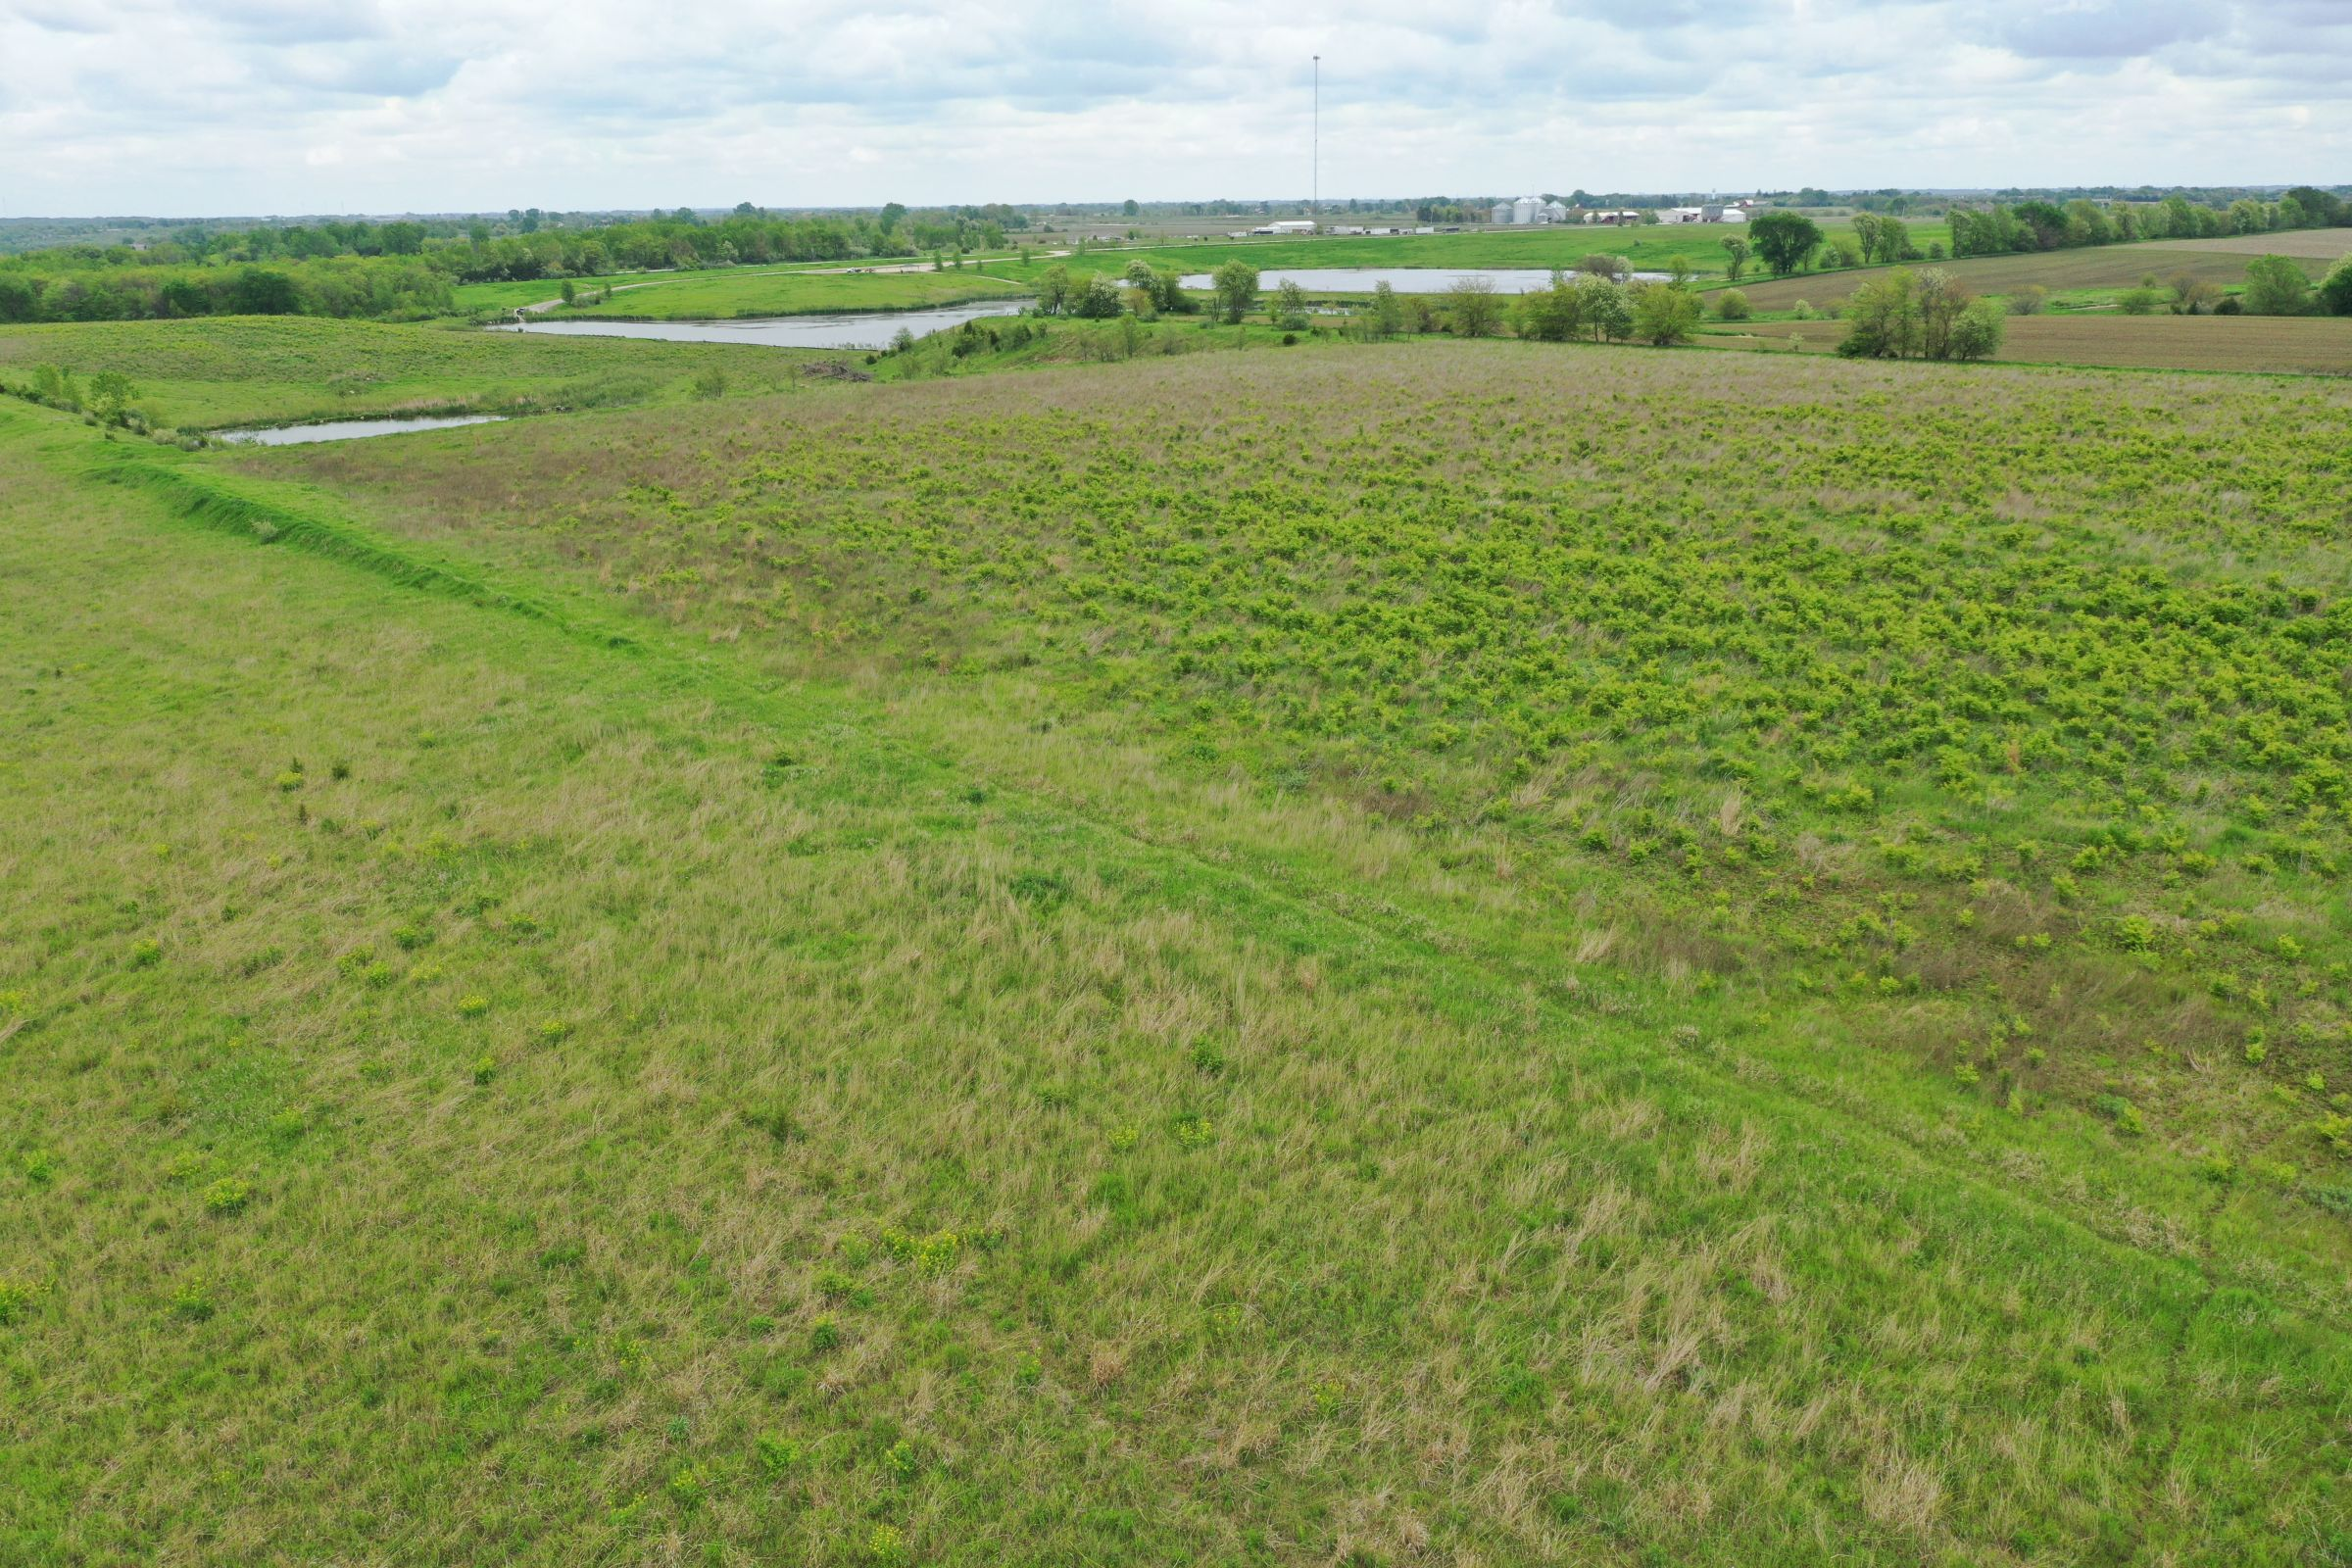 land-dallas-county-iowa-51-acres-listing-number-14894-1-2020-05-27-153220.JPG